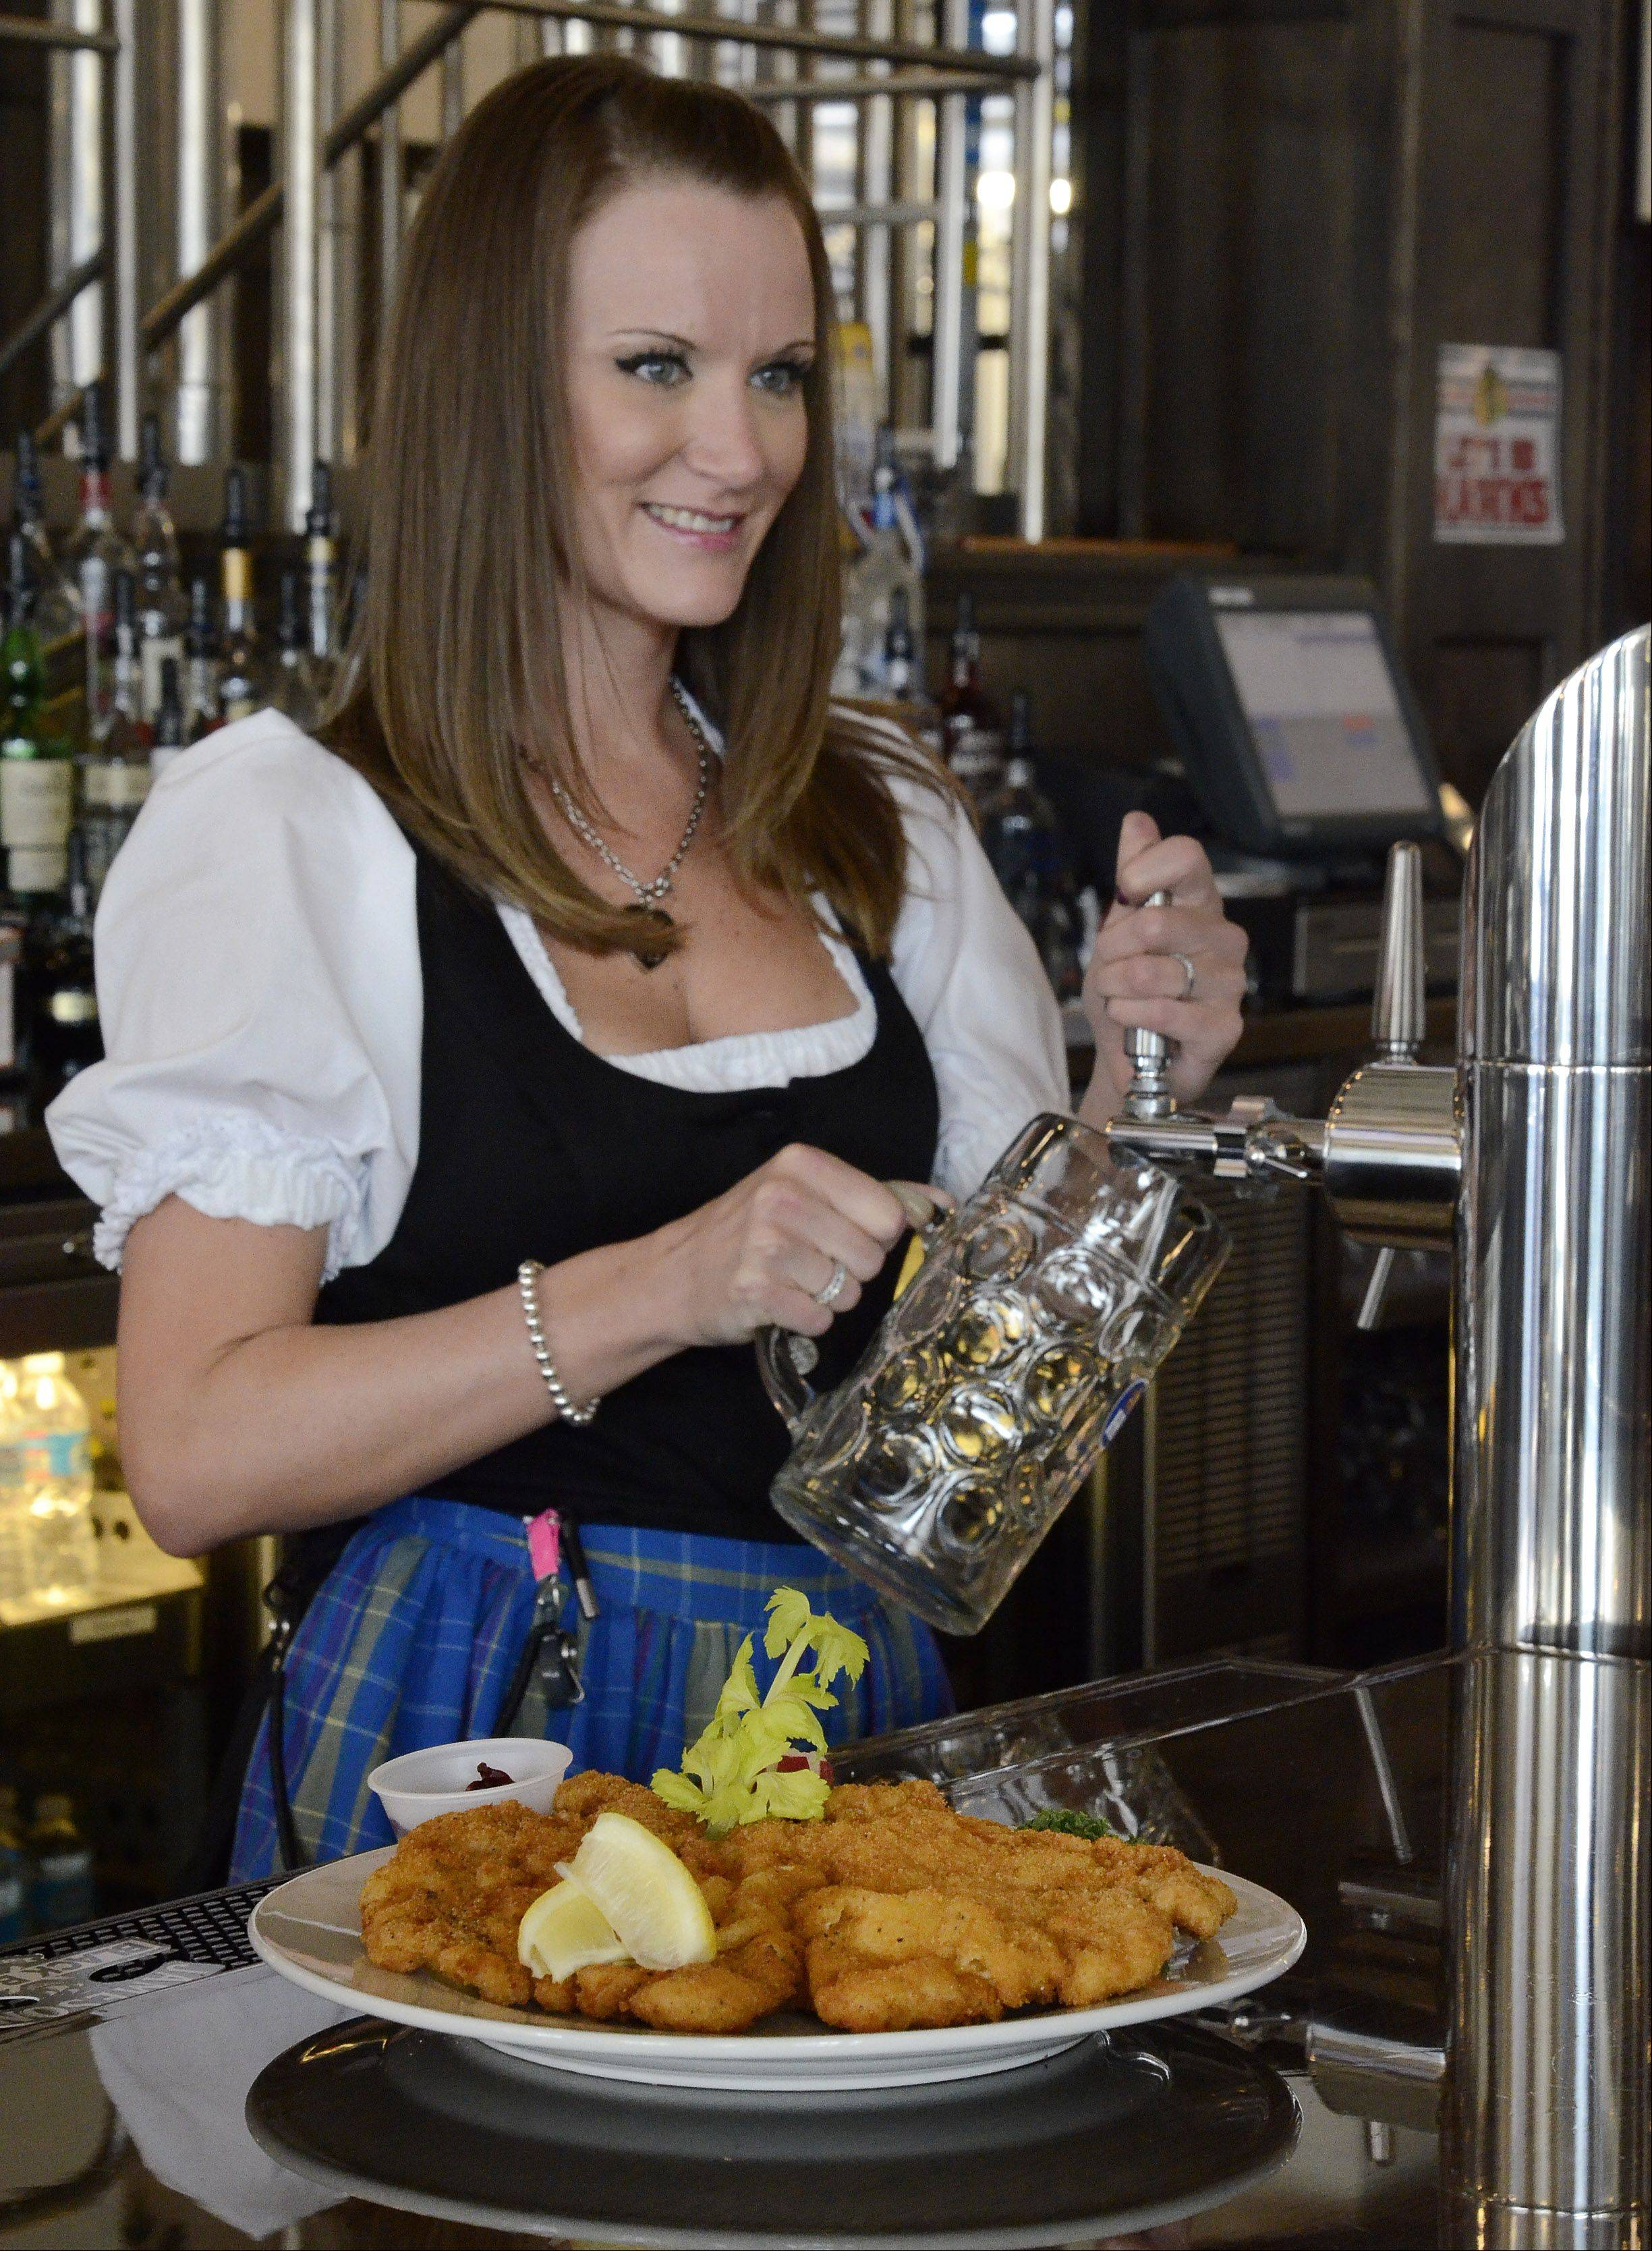 Kelly Gundlach pours a beer in front of a plate of Schnitzel Weiner Art, a crispy breaded pork cutlet, at Hofbrauhaus in Rosemont.